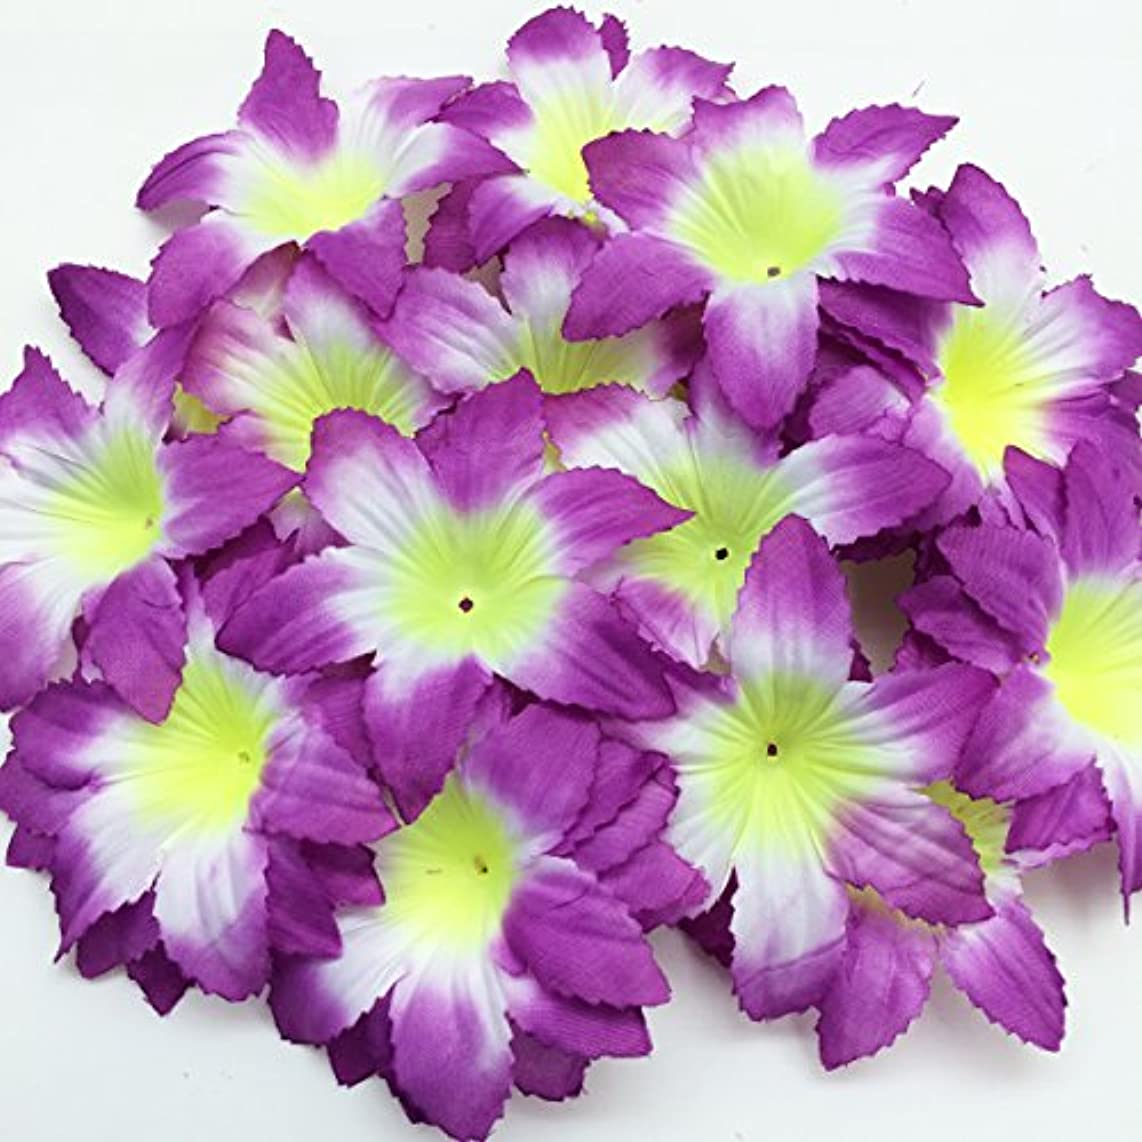 PEPPERLONELY Brand Purple Fabric Flower 6 Petals, 1 OZ Approx.40PC+ Flower Petals, 127mm ( 5 Inch )